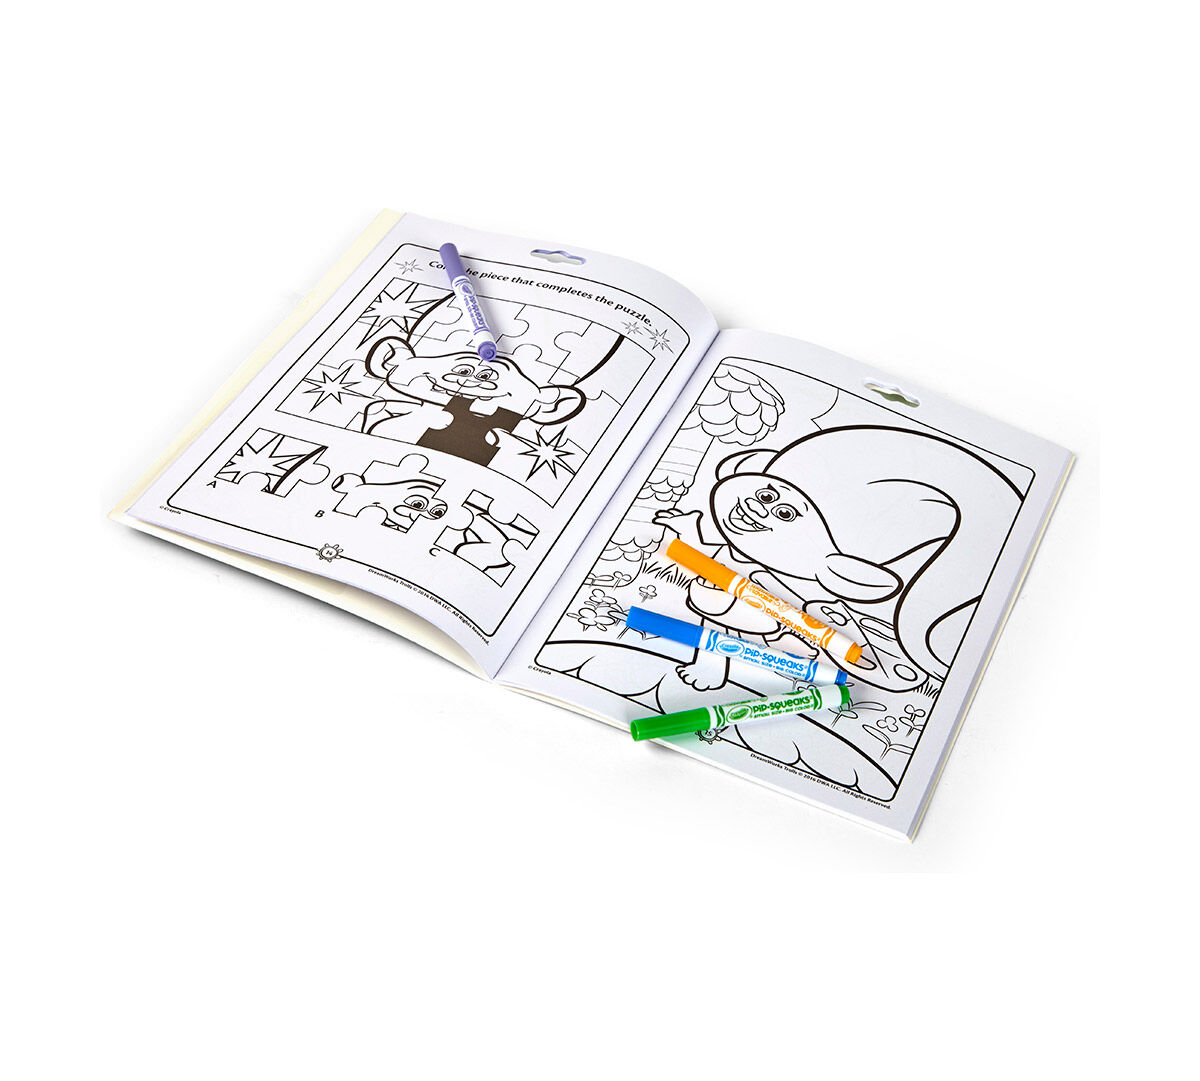 Coloring Activity Book Kim Possible Images Pages Hello 04 6919 0 960 Trolls